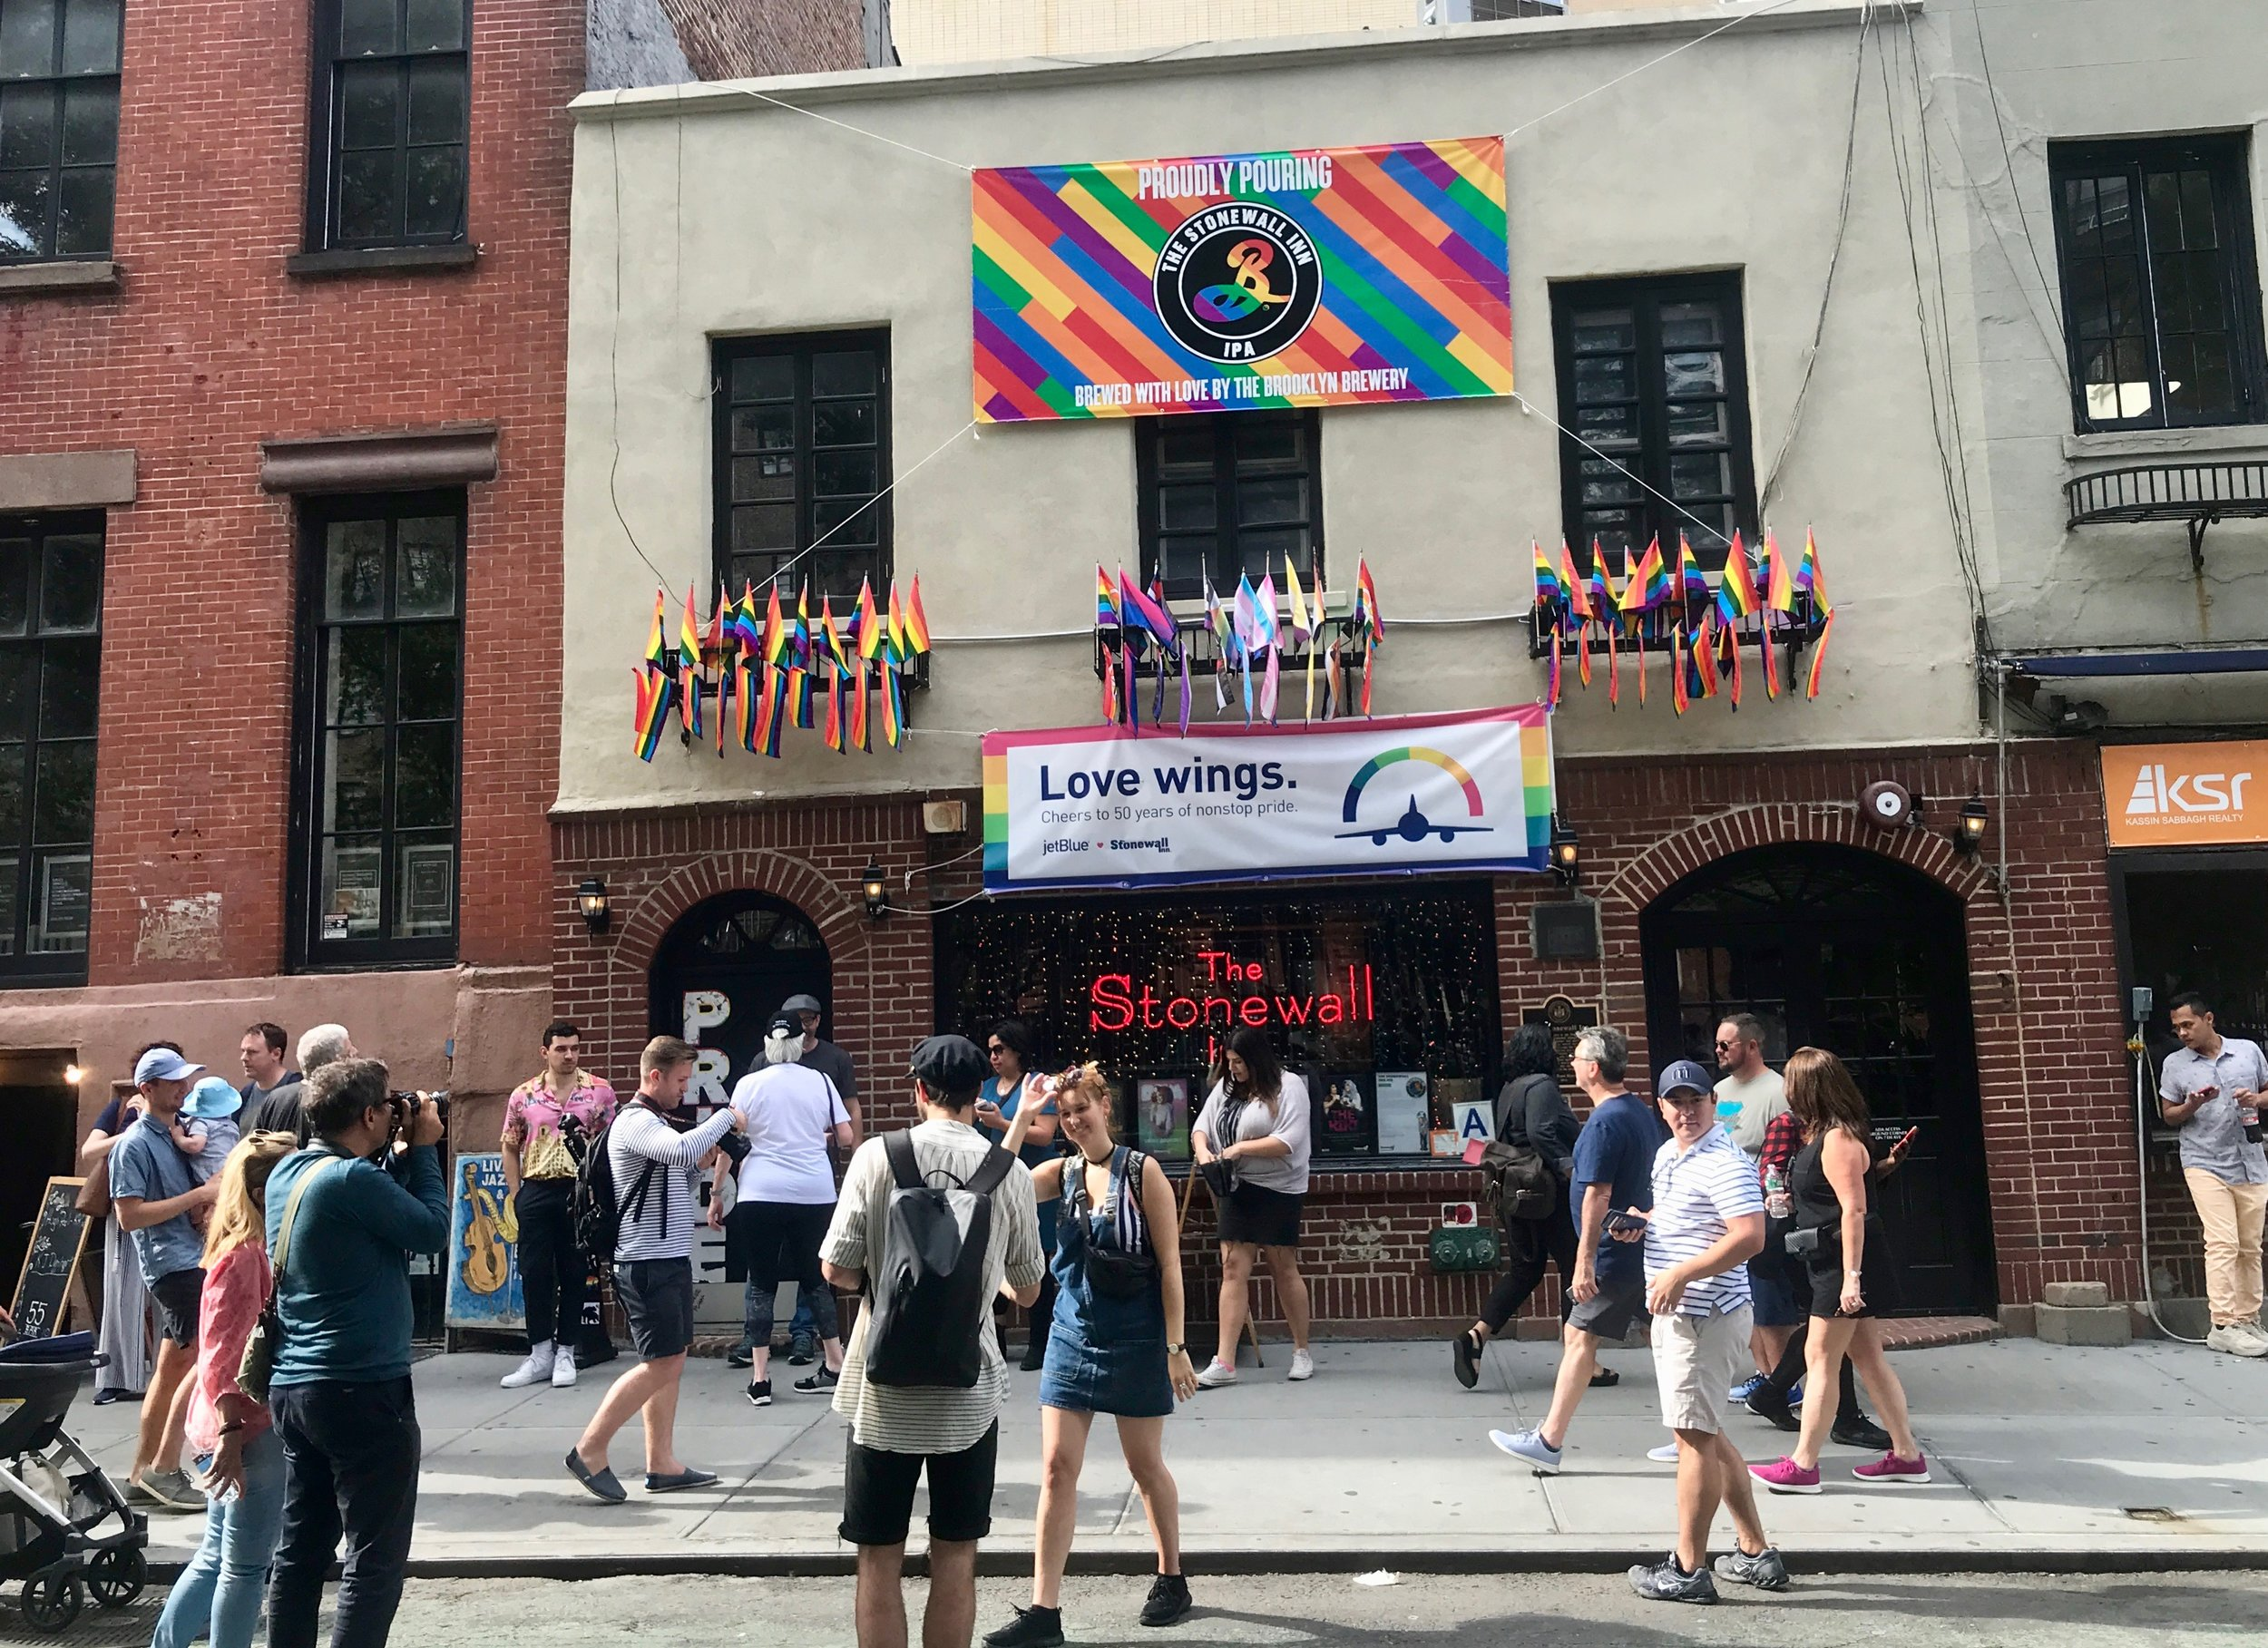 Tourists mill around New York's Stonewall Inn, the dive bar that was the site of street clashes in 1969 that helped launch the gay rights movement.